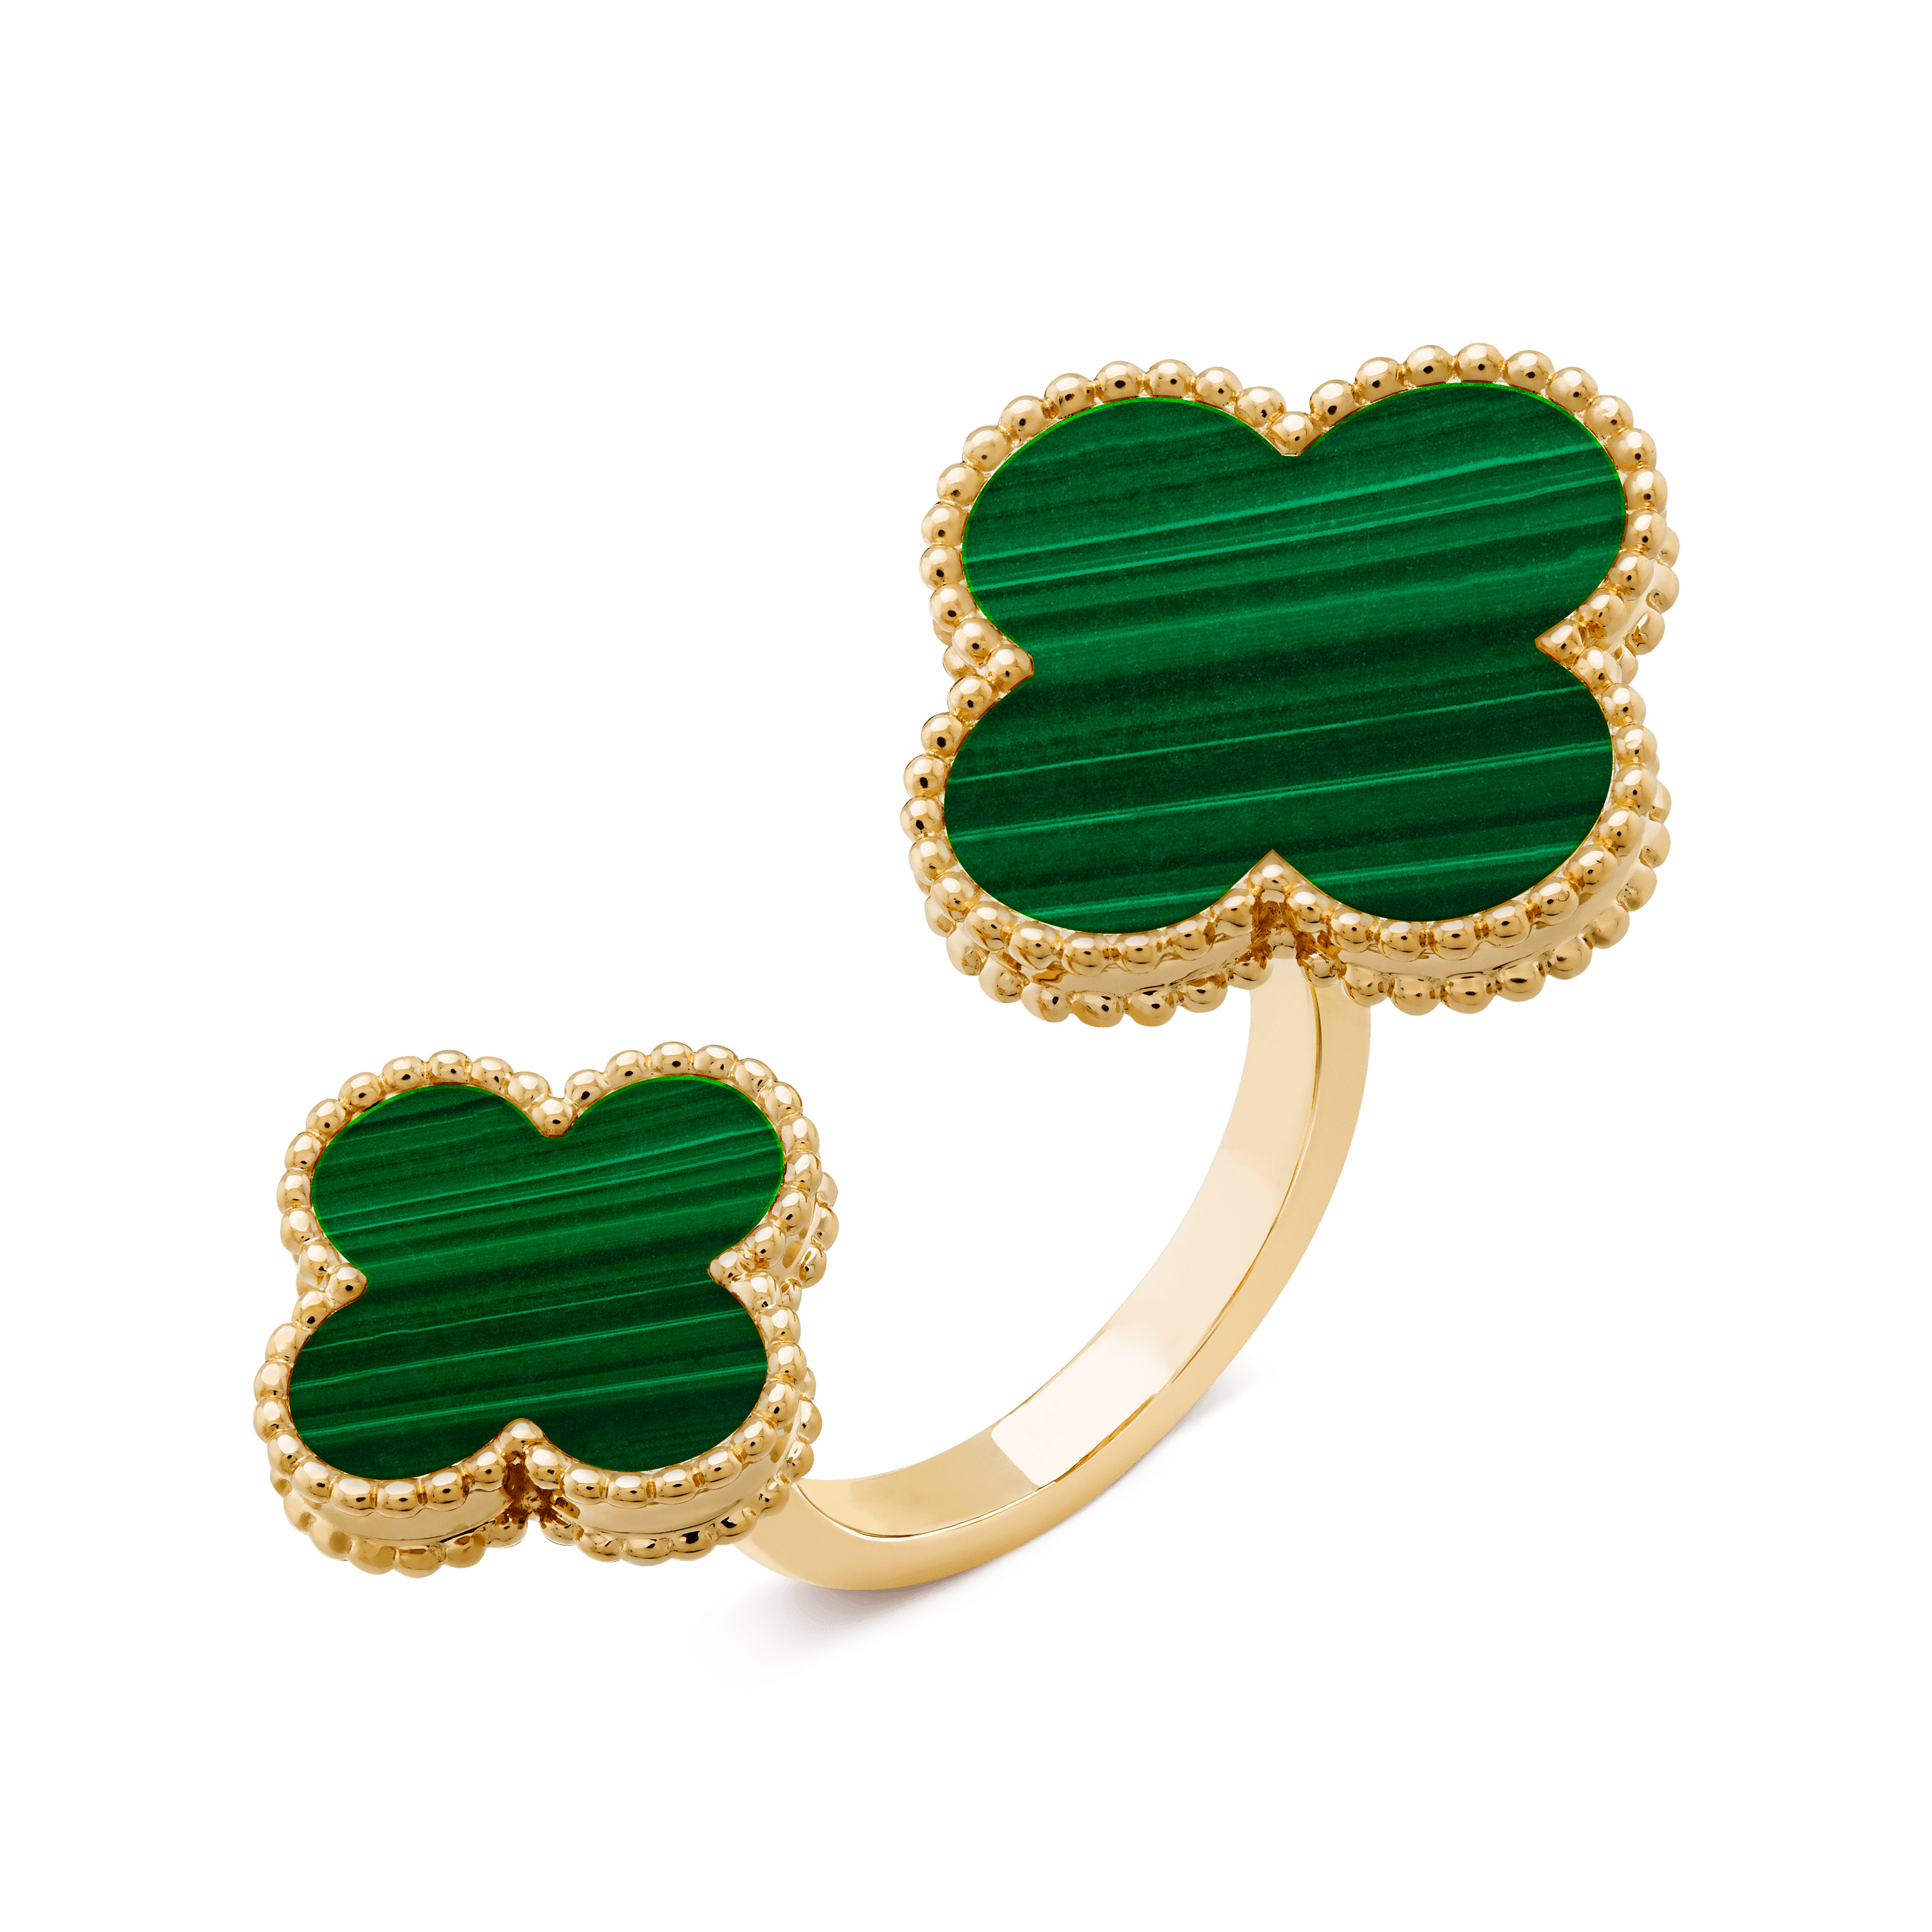 Magic Alhambra Between the Finger ring, Yellow gold, Malachite:  2 stones, Three Fourth, Jewelry Ring